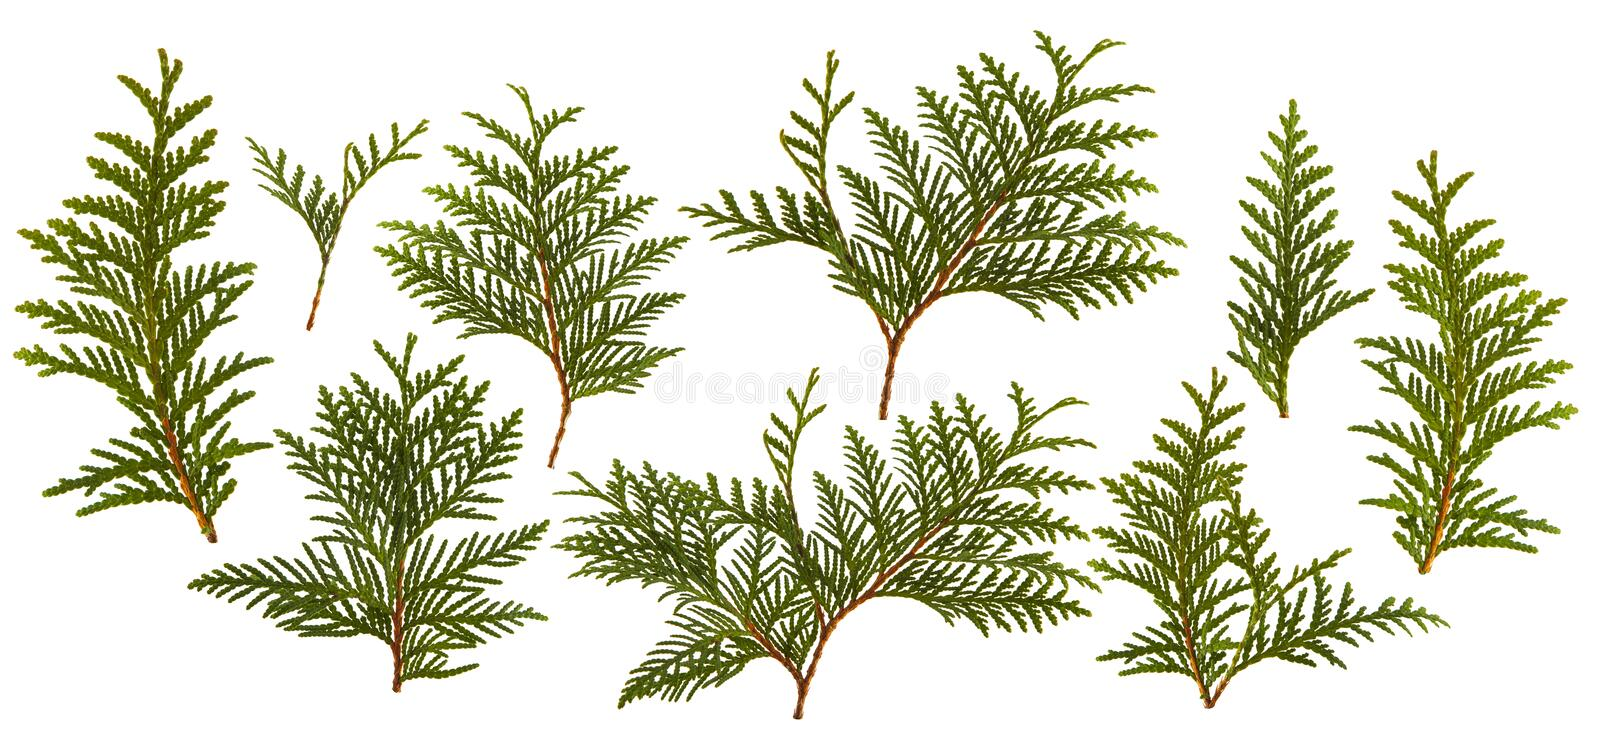 Fresh green pine leaves isolated royalty free stock photo